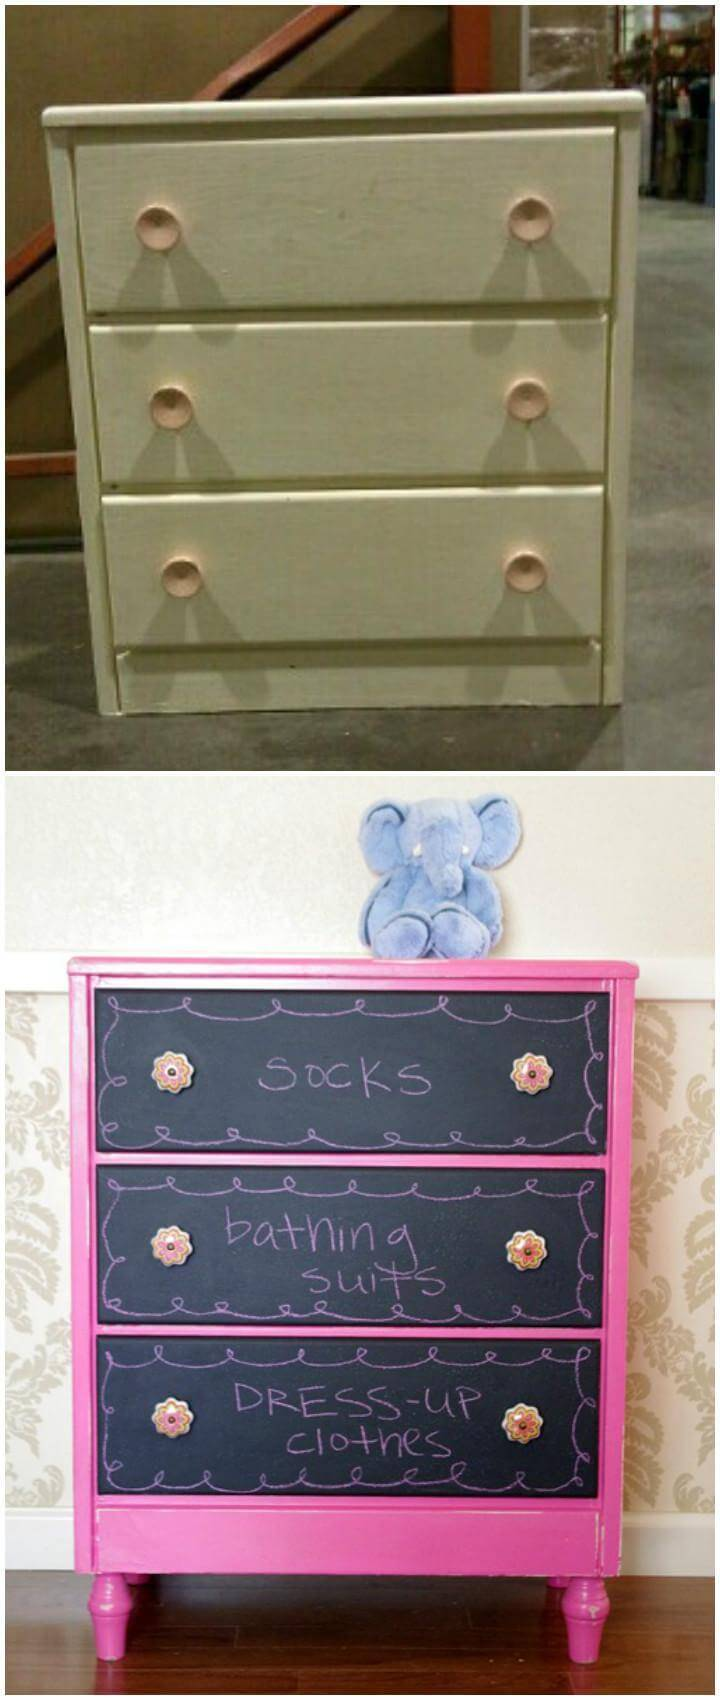 DIY Chalkpainted Dresser - Smart Furniture Transformation